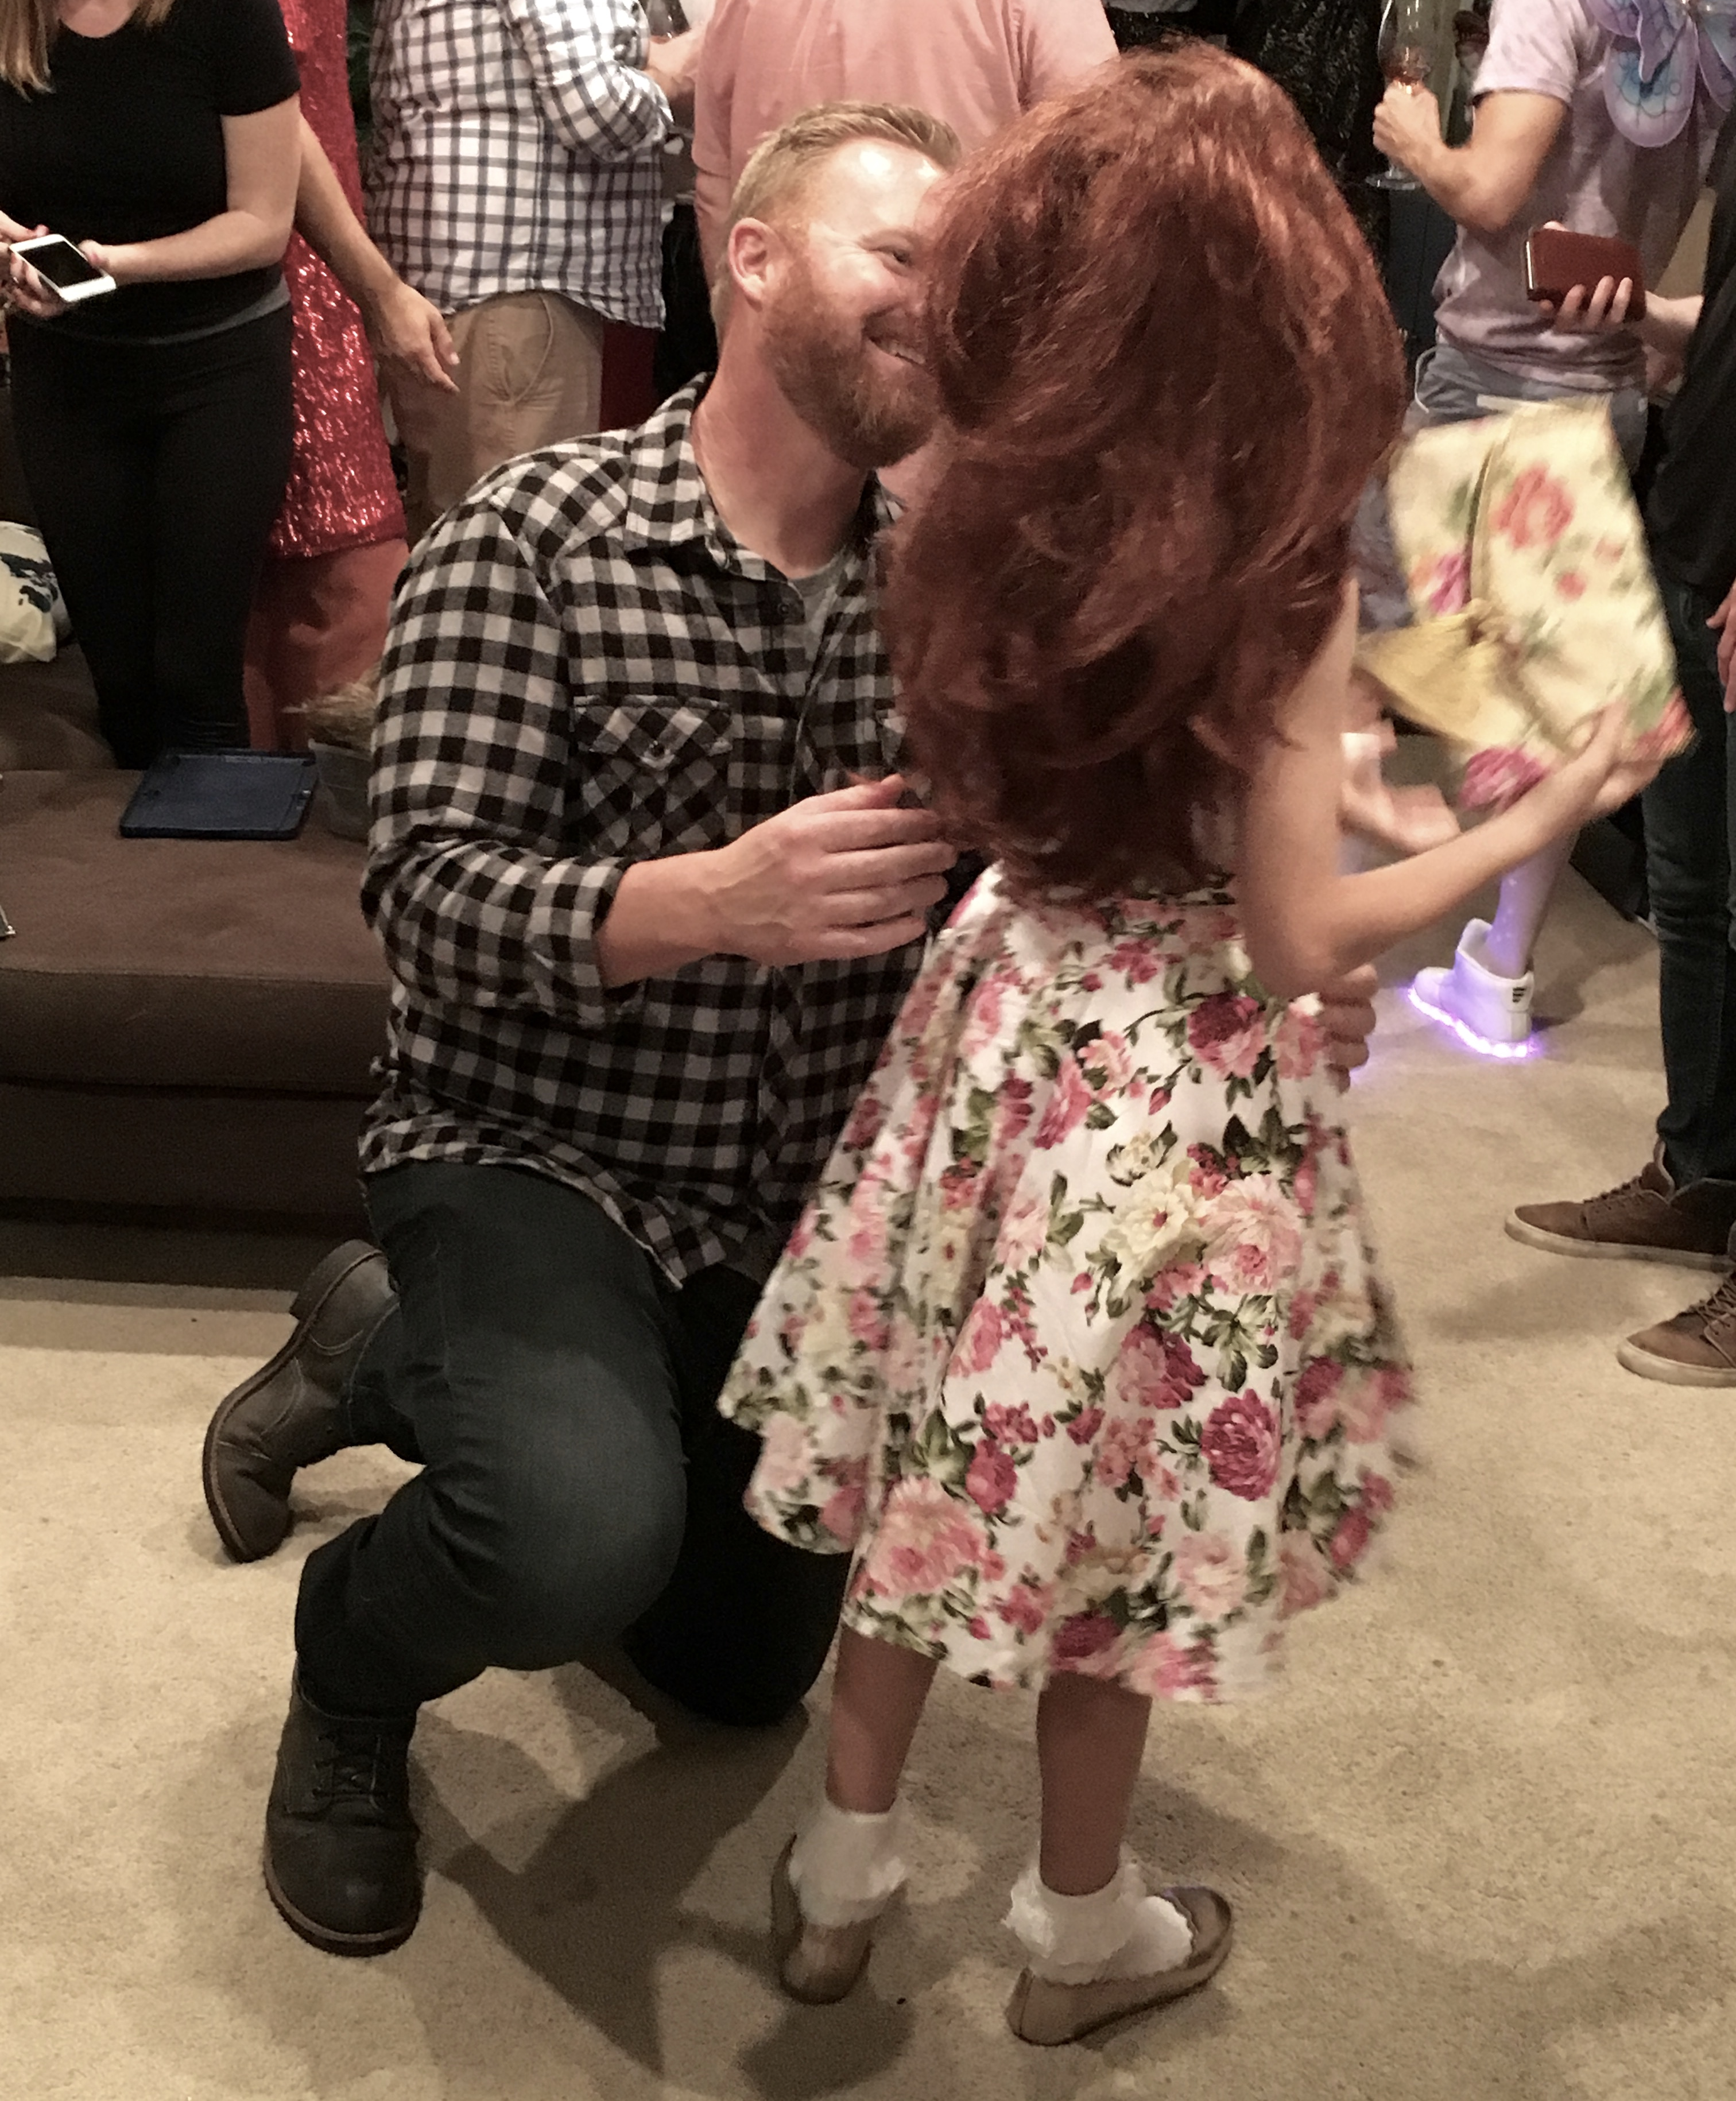 i m the dad of a boy who loves drag queens raising my rainbow bob the drag queen has proven to be a person worth admiring after reading my wife s essay about our son dressing up as him for halloween bob rearranged